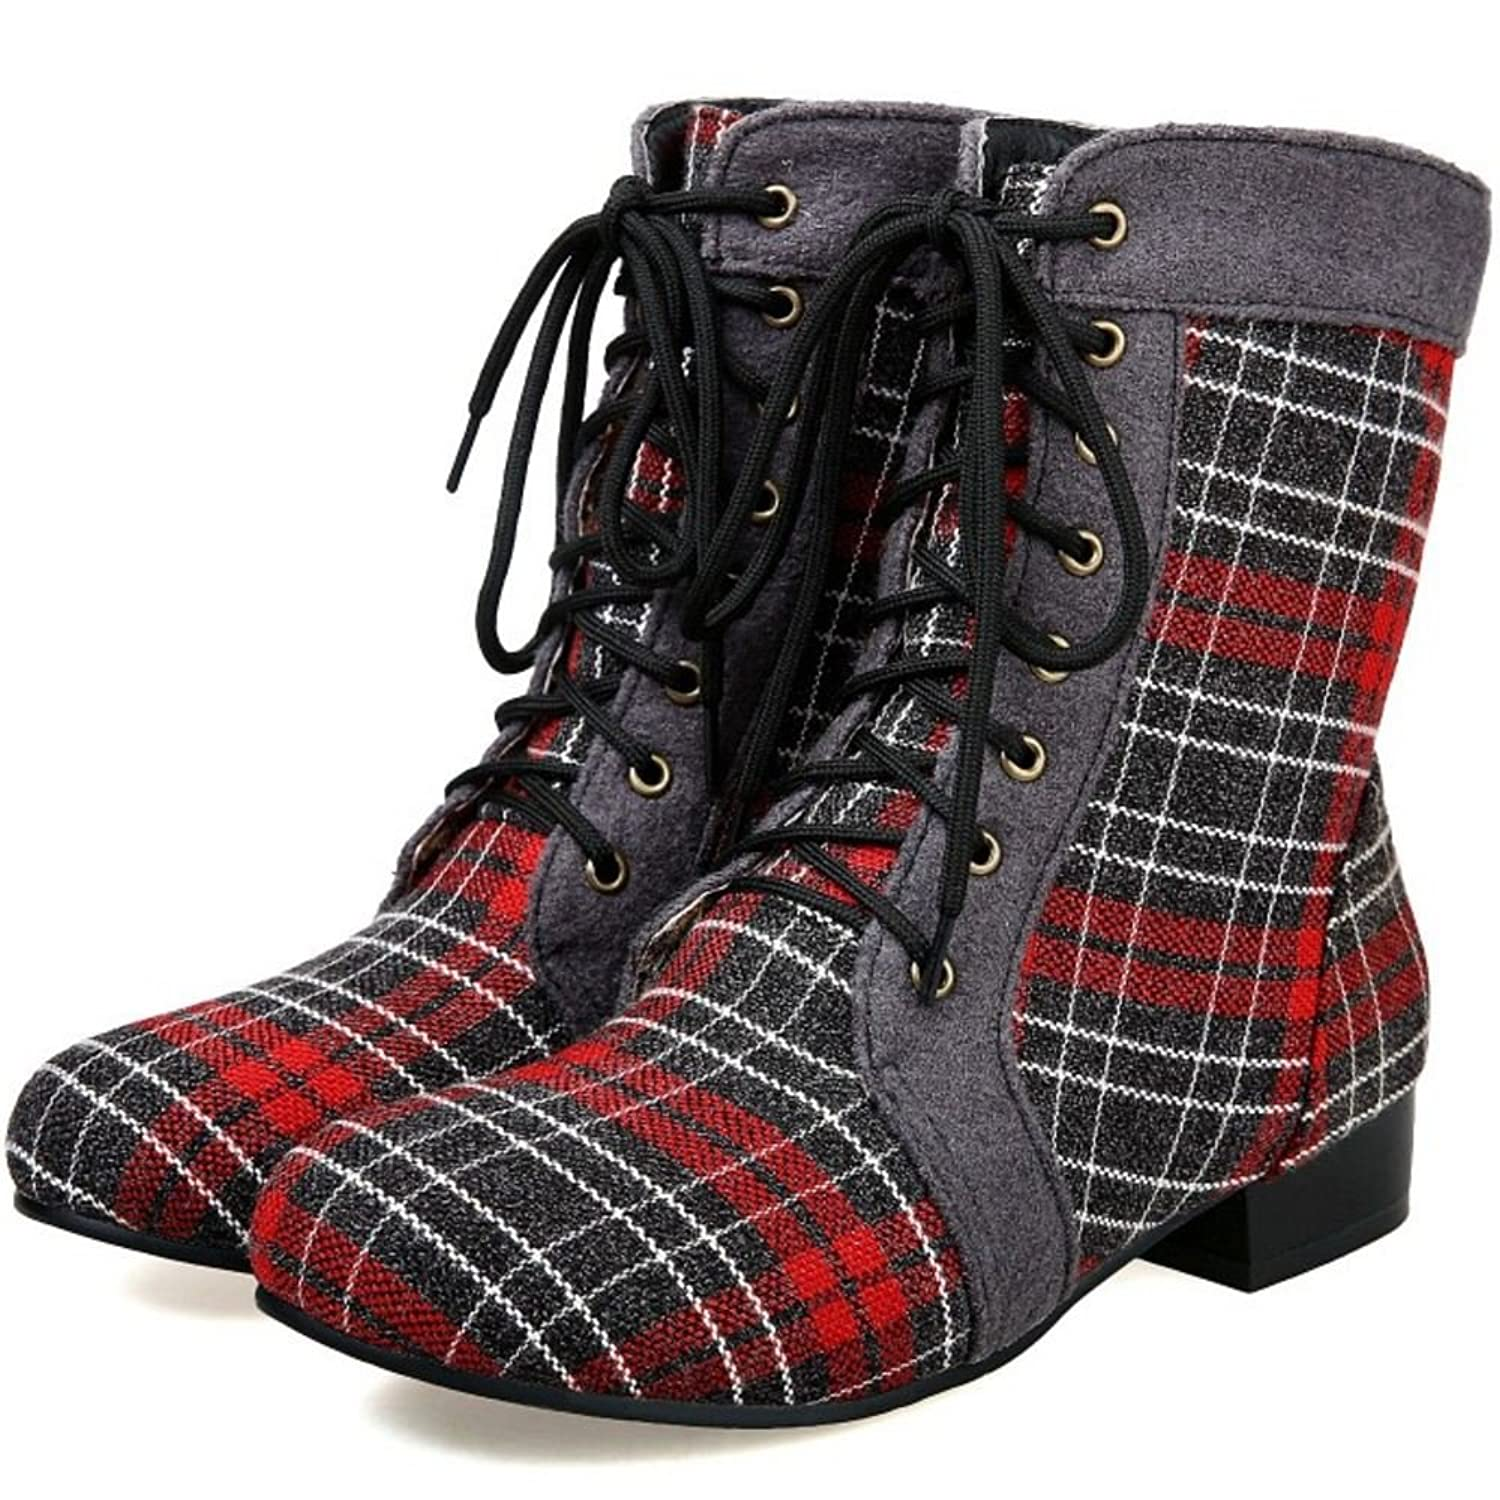 1960s Style Shoes TAOFFEN Women Low Heel Round Toe Classic Lace Up Plaid Ankle Boots $28.99 AT vintagedancer.com